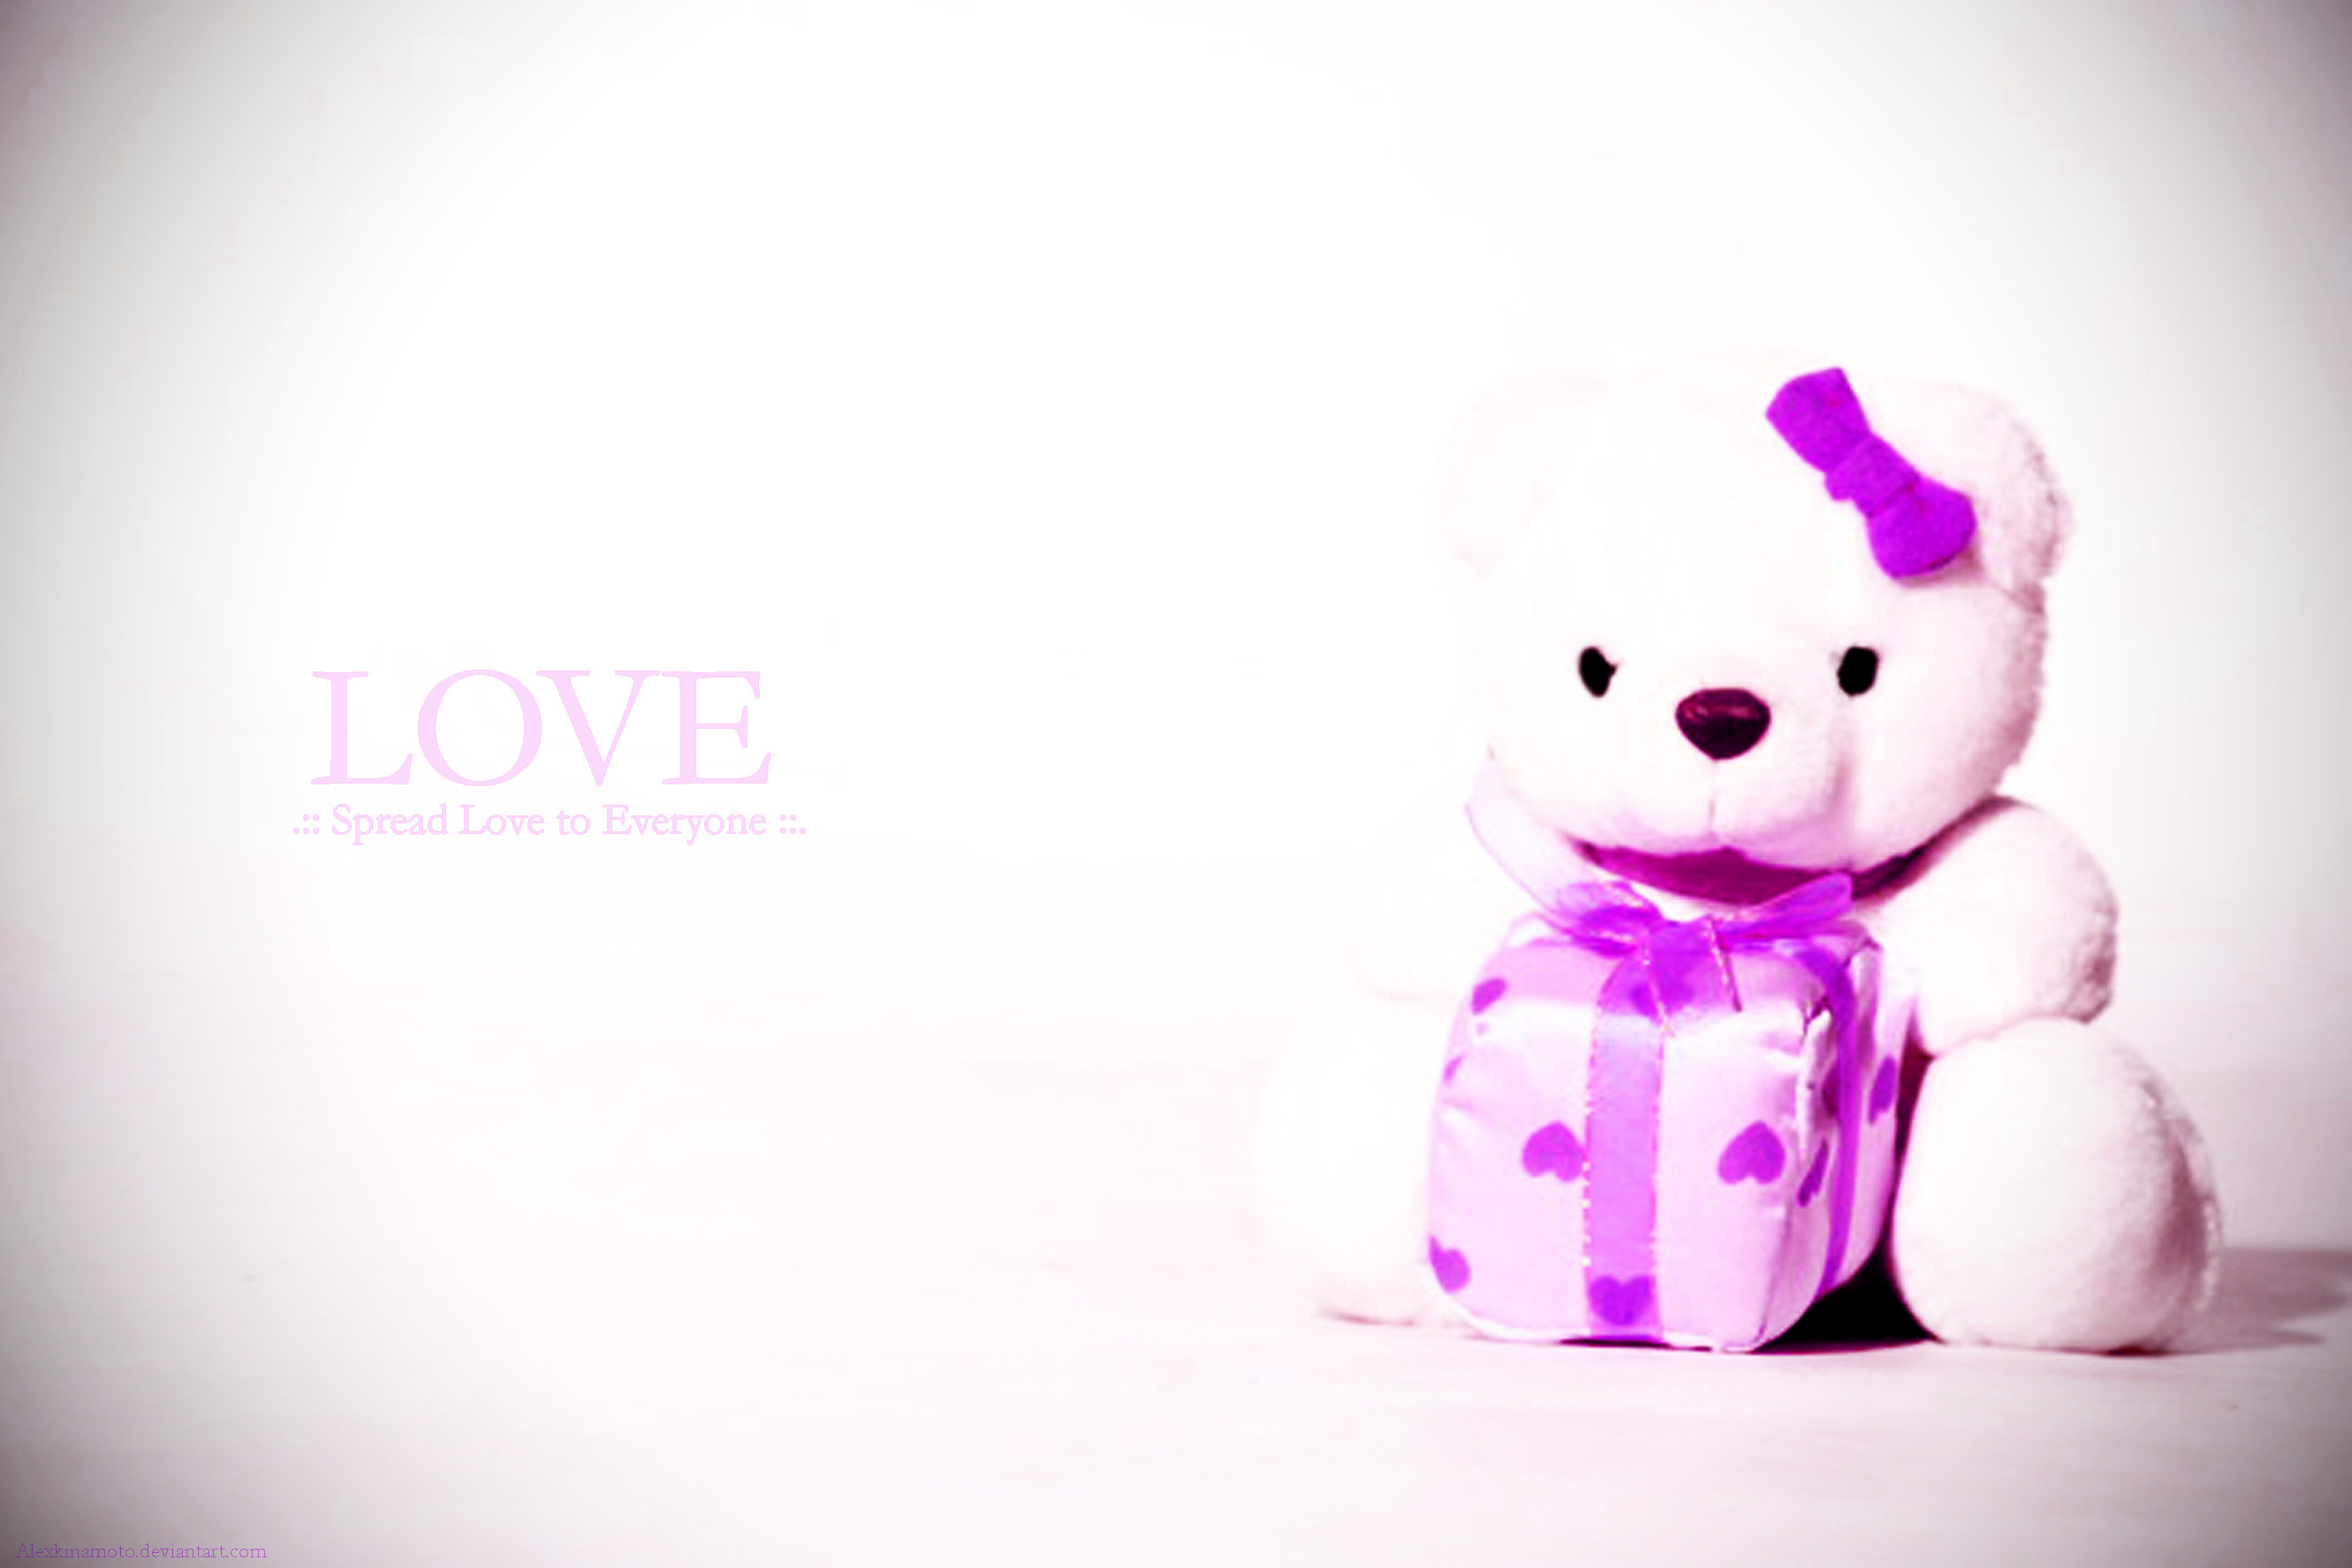 Love Teddy Bear Hd Wallpaper : Love Teddy Bear Wallpaper HD #13861 Wallpaper WallDiskPaper